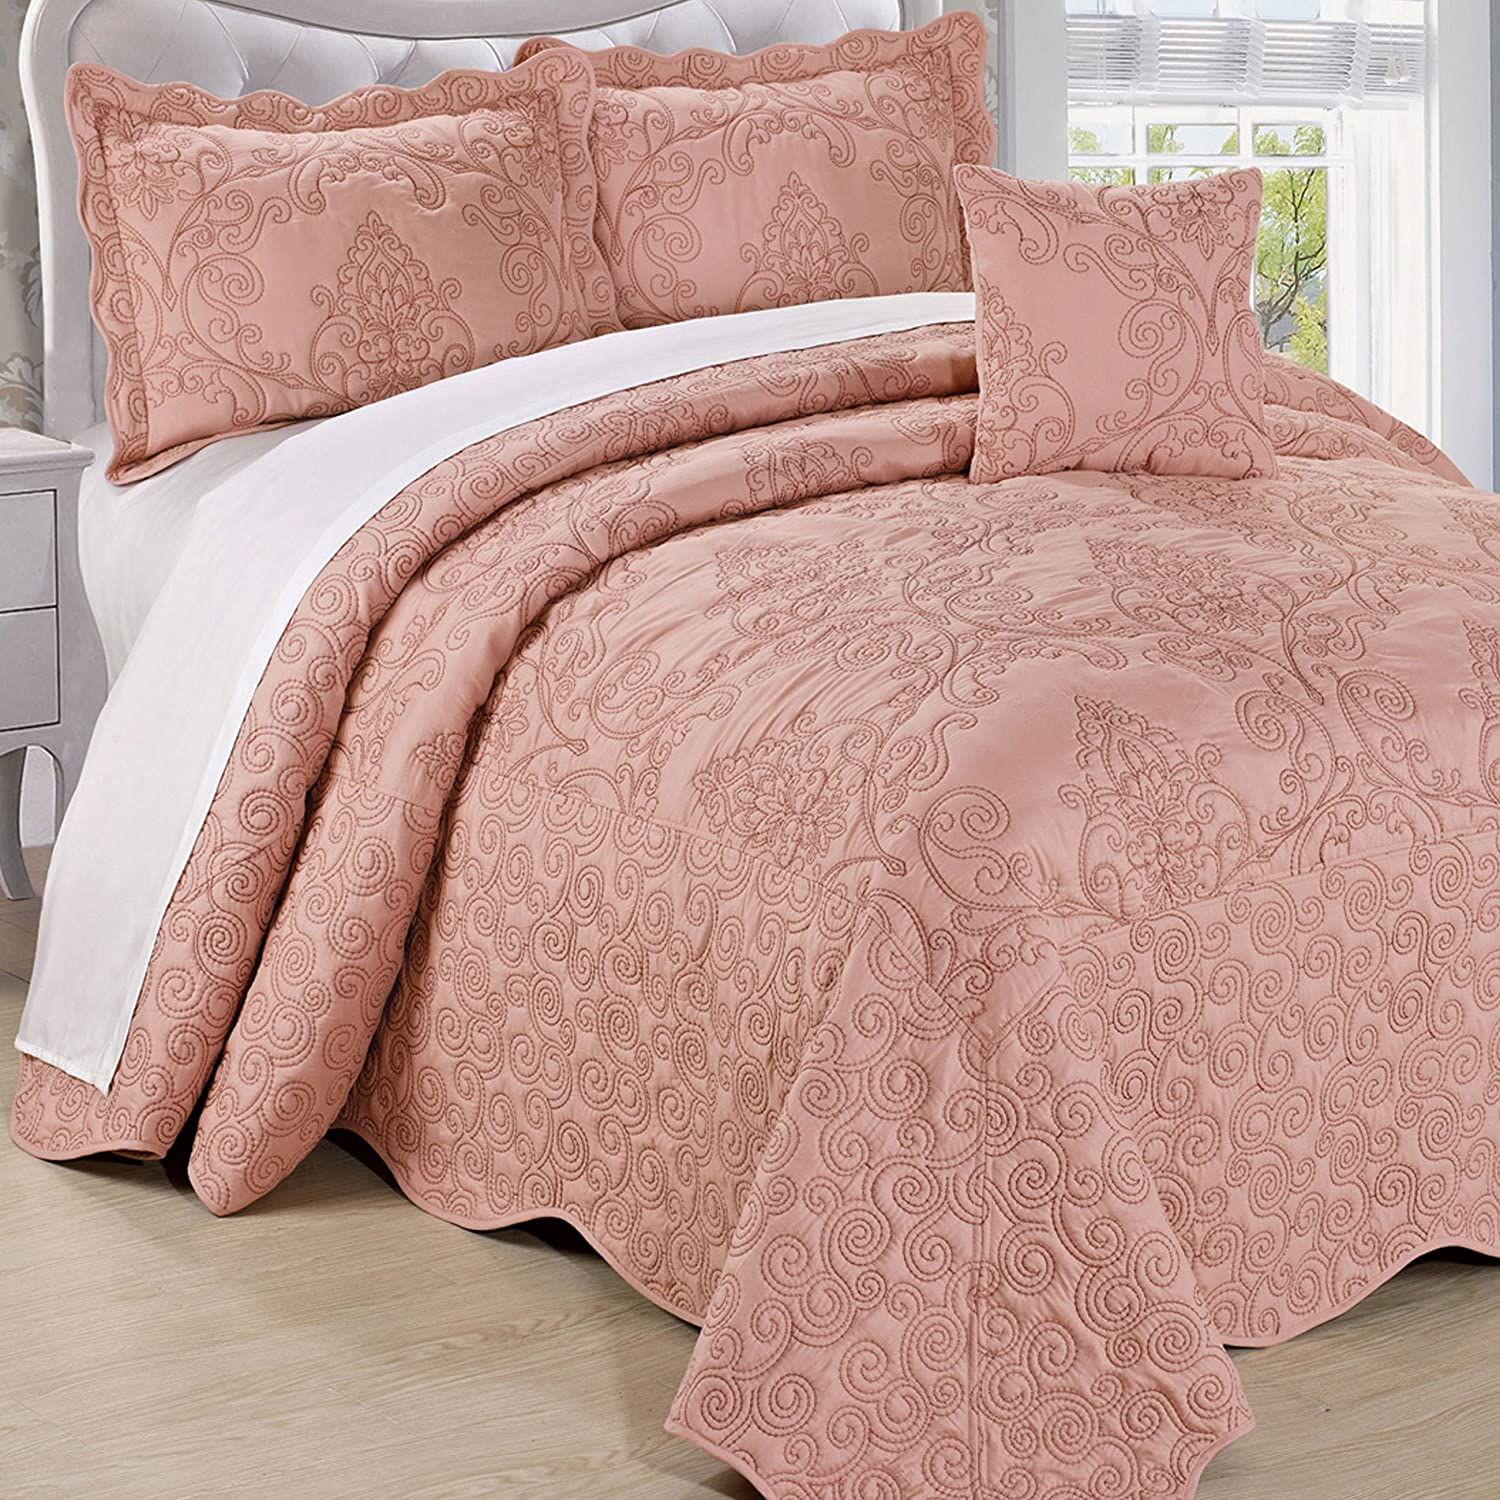 "Home Soft Things Damask Bedspread, Oversize King (120"" x 120""), Dusty Pink"